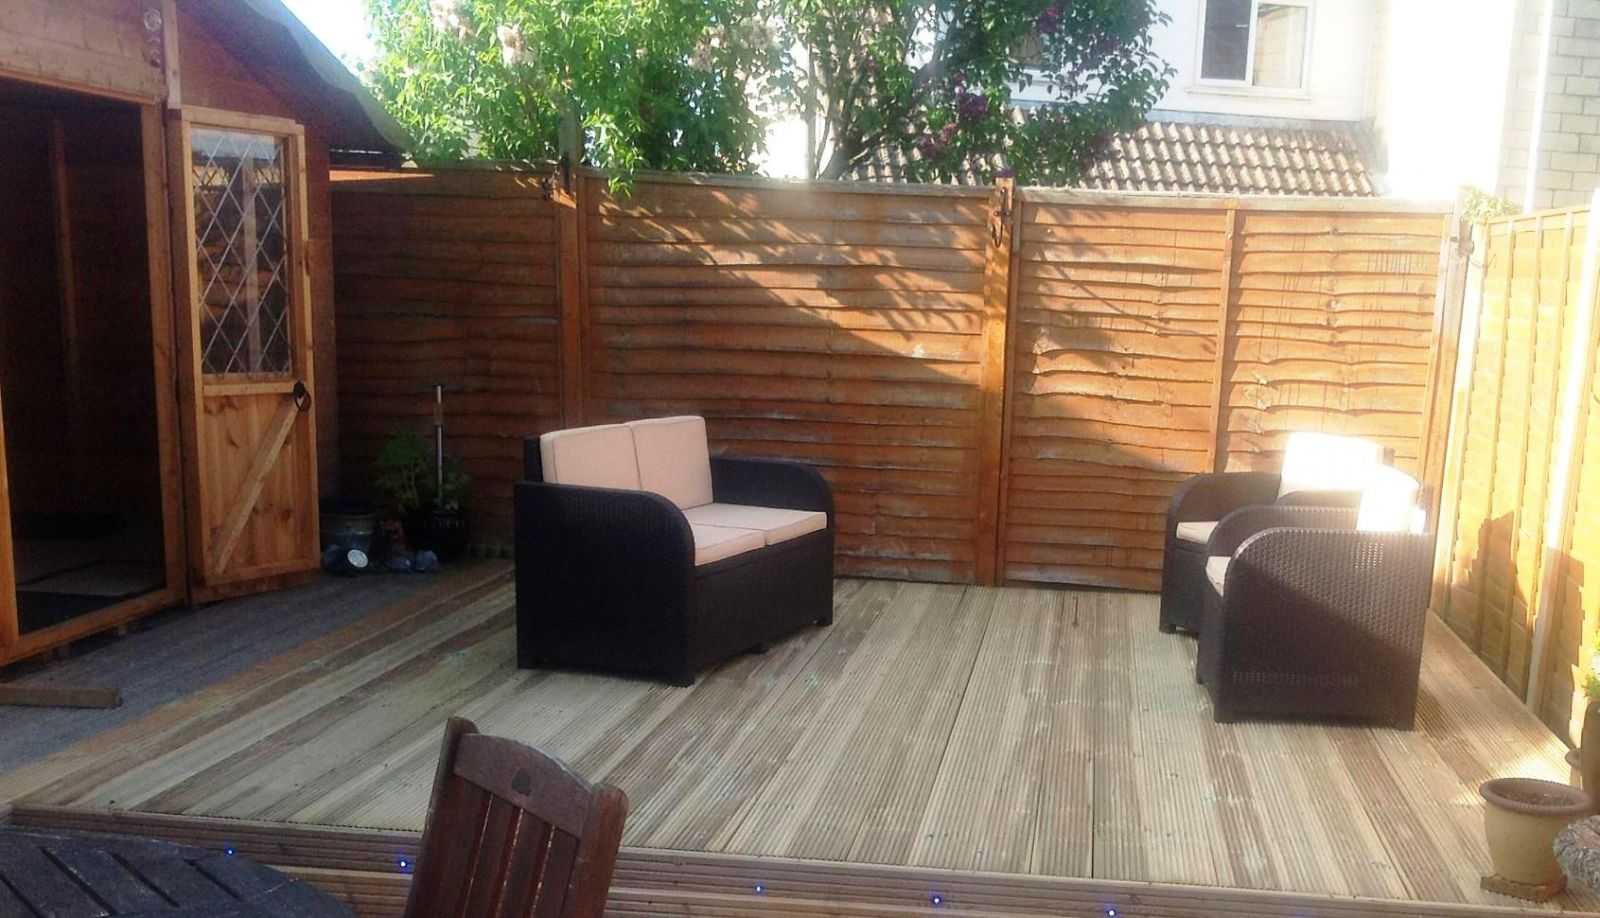 Timber Deck Kit 5m Boards X 37m165 X 120 Wooden Garden